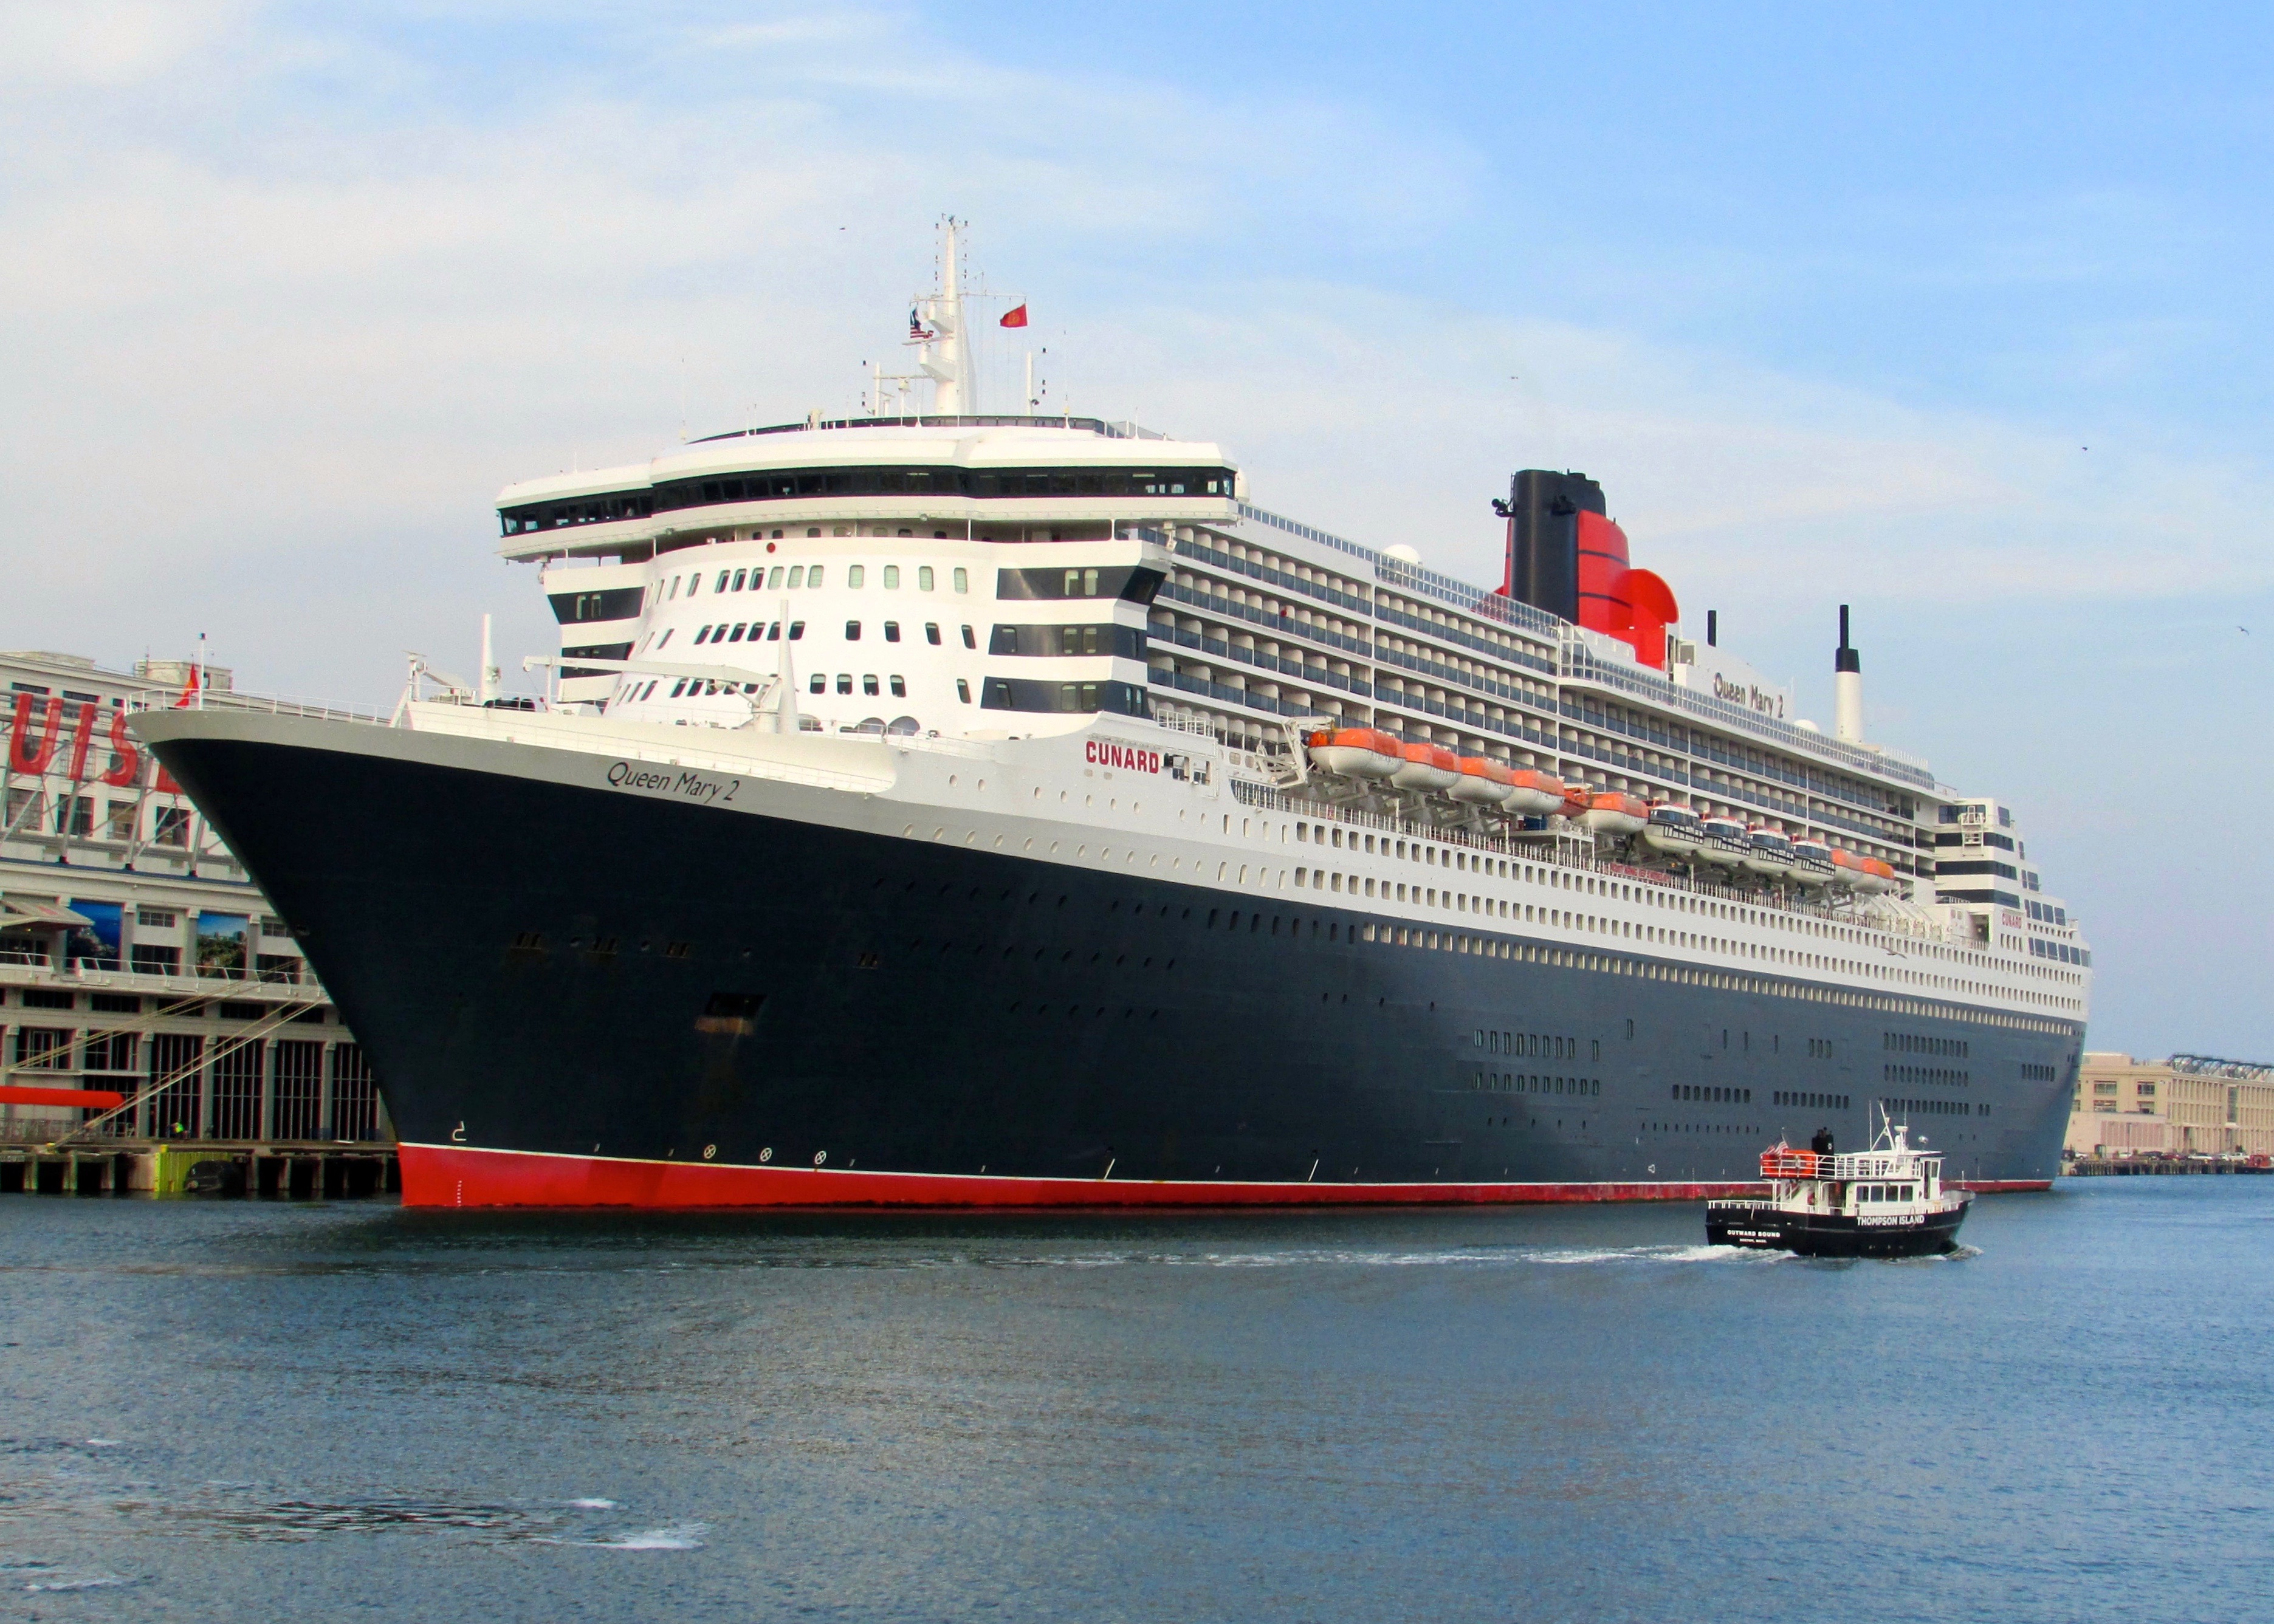 Queen Mary 2 - Wikipedia